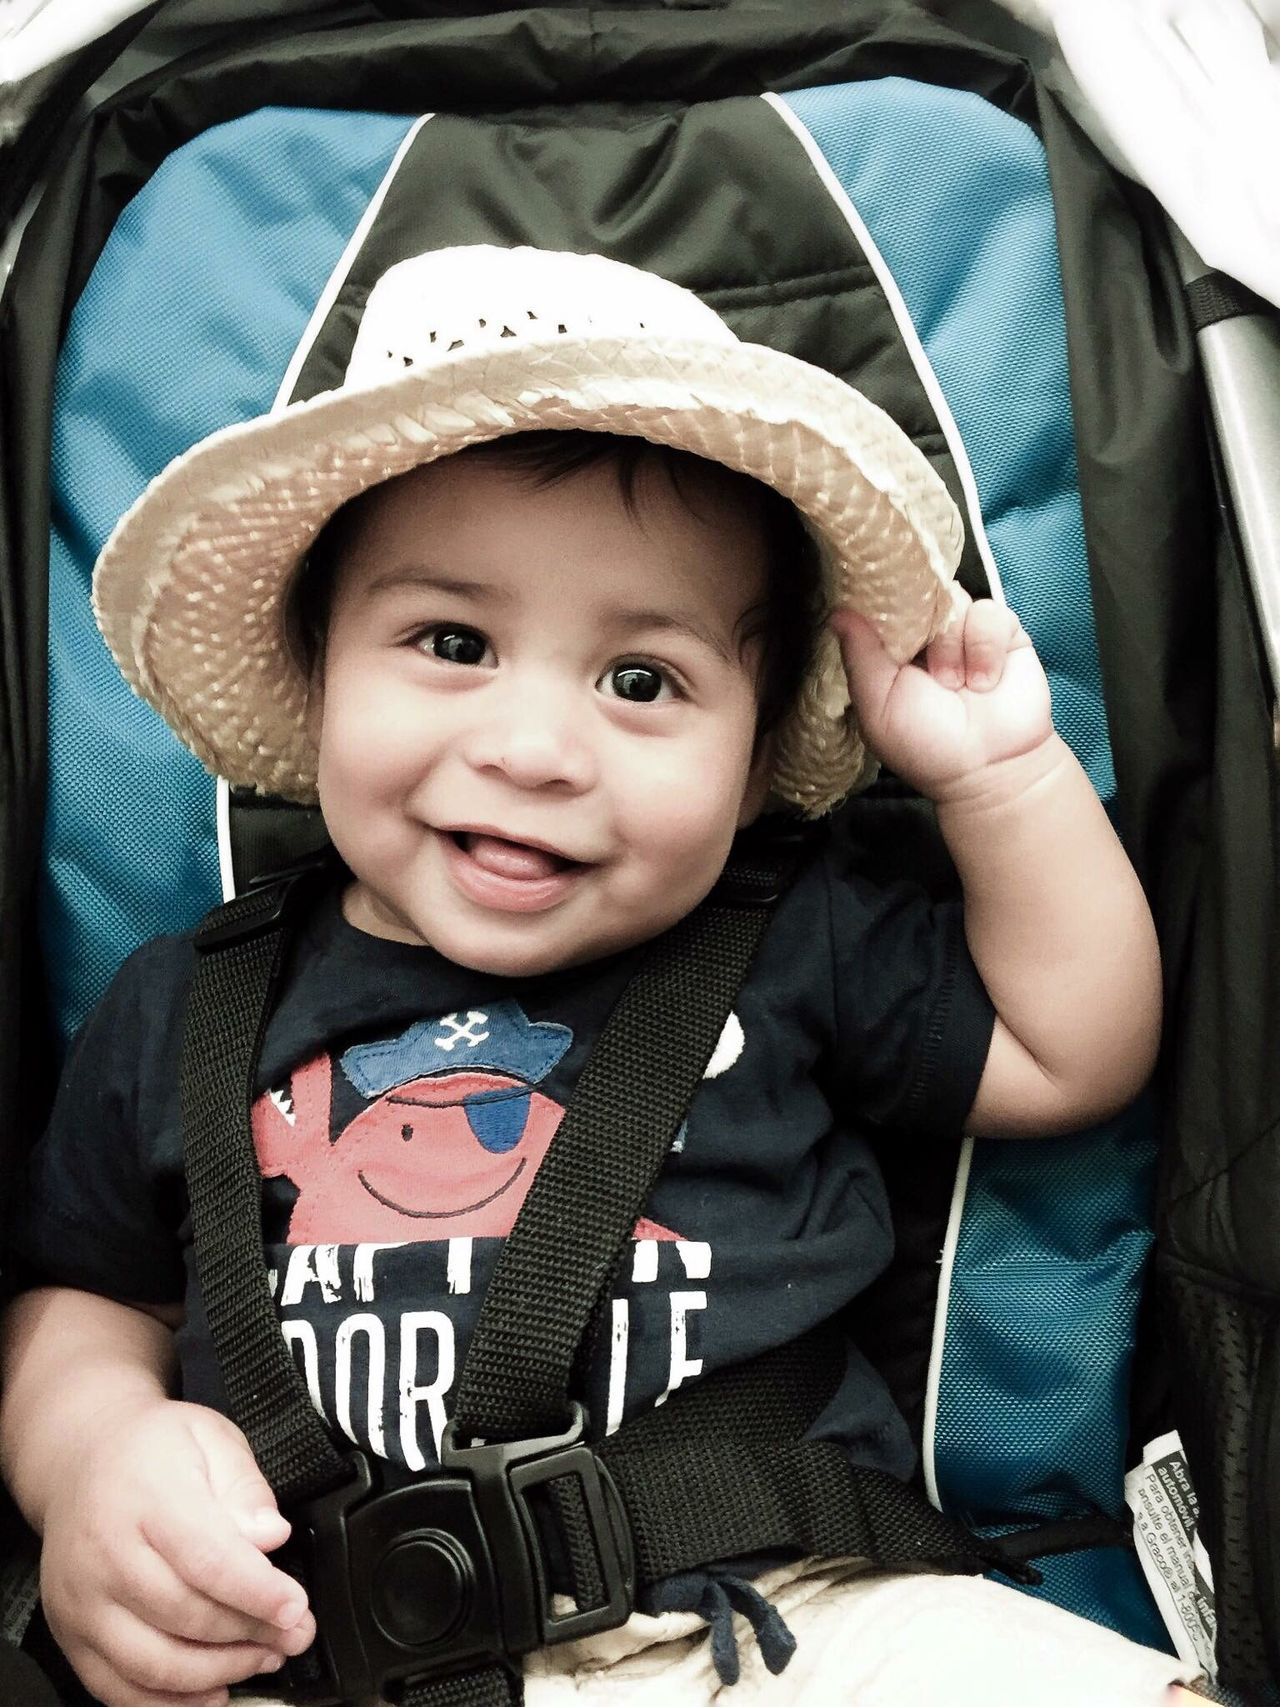 My babyboy modeling for us and showing his beautiful smile Baby Photography Babyboy Portraitist-2016 Eyeem Awards PortraitPhotography Casualphotography Photographer And Model Focus Looking At Camera Lifestyles Baby